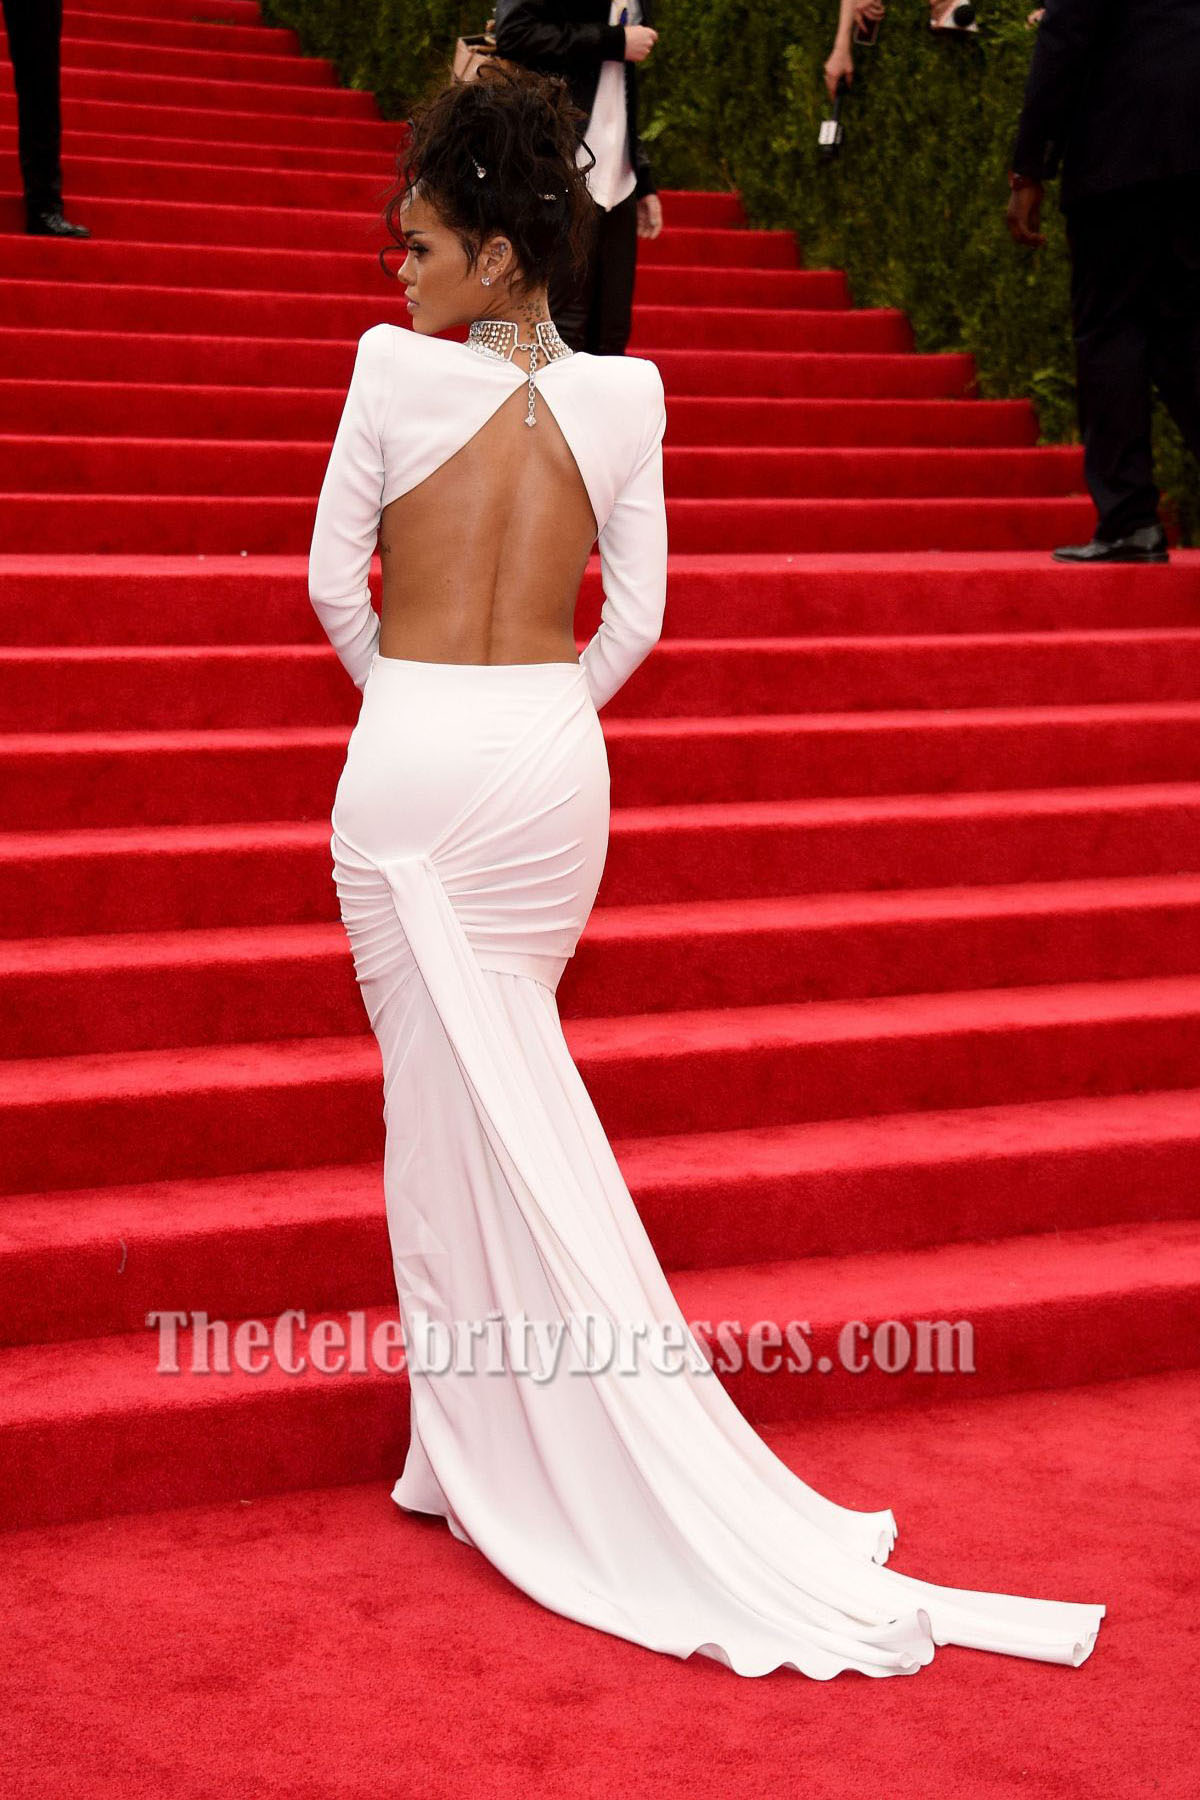 Rihanna White Evening Dress 2014 Met Gala Red Carpet ...